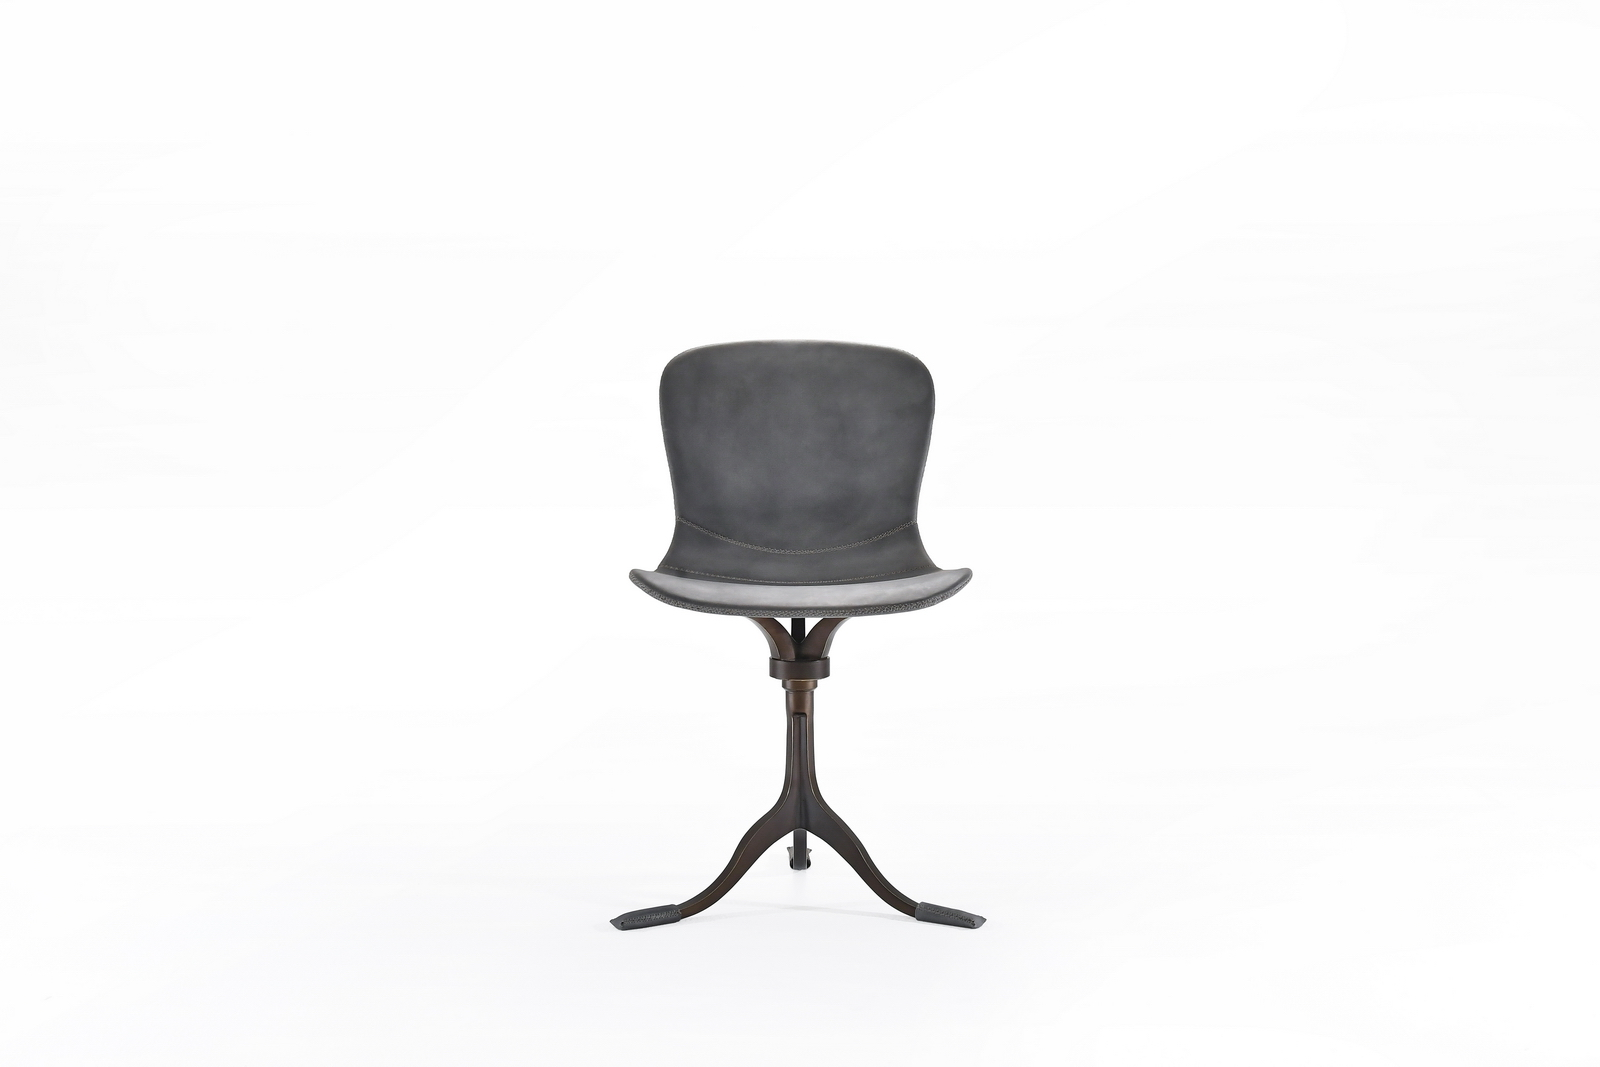 PTendercool-Chair-PT43-BS3-GY-210615-01